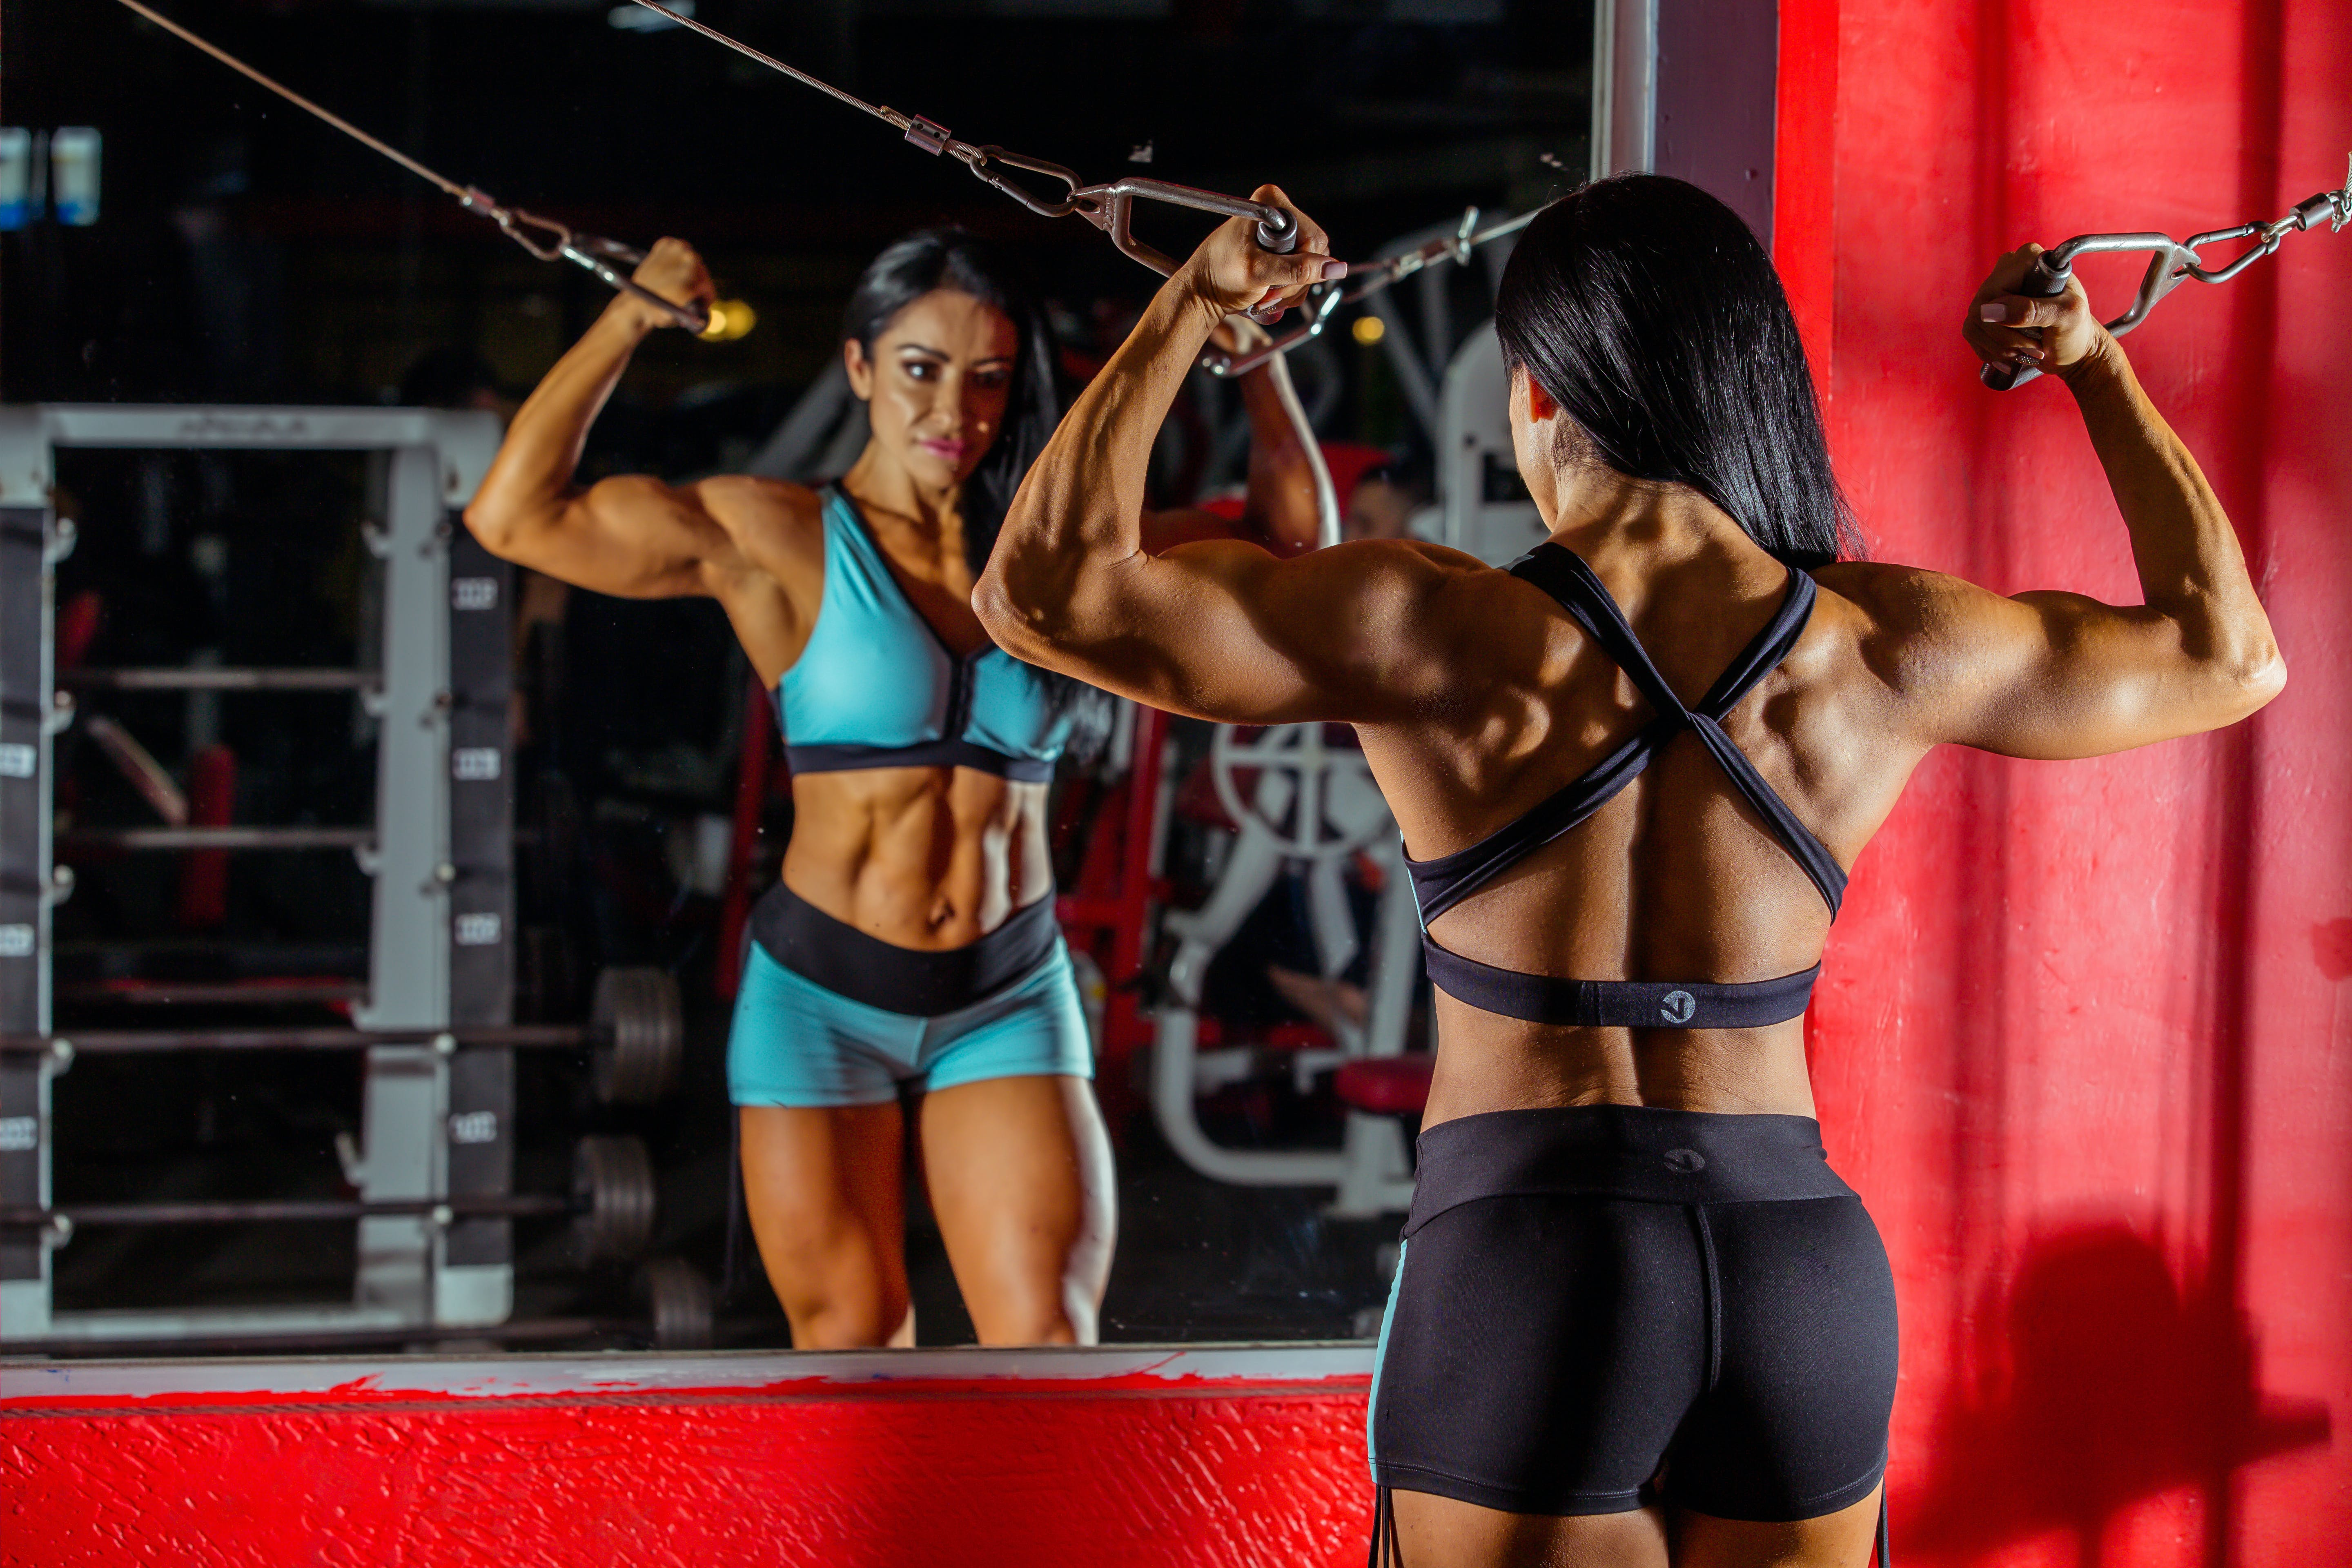 Photo Woman Bodybuilder Using Cable and Pulley Machine While Facing Mirror